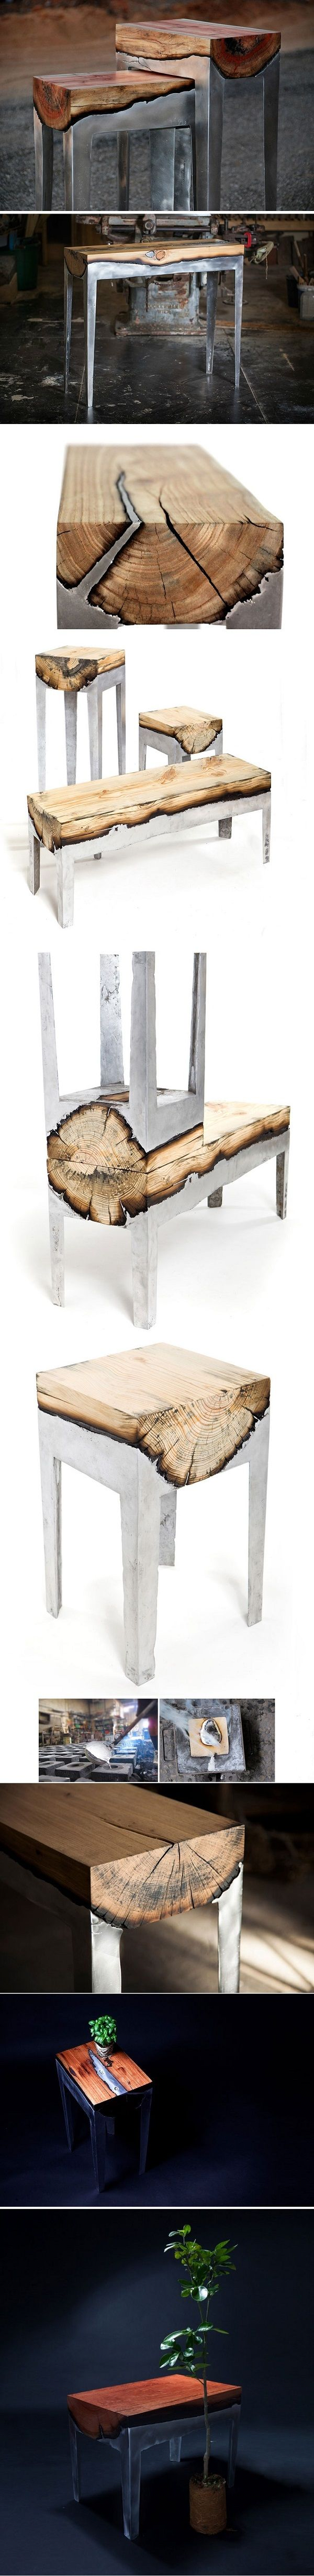 Wood And Metal Unite In Striking Furniture By Hilla Shamia http://emfurn.com/collections/dining-table http://emfurn.com/collections/dining-tables-dining-chairs